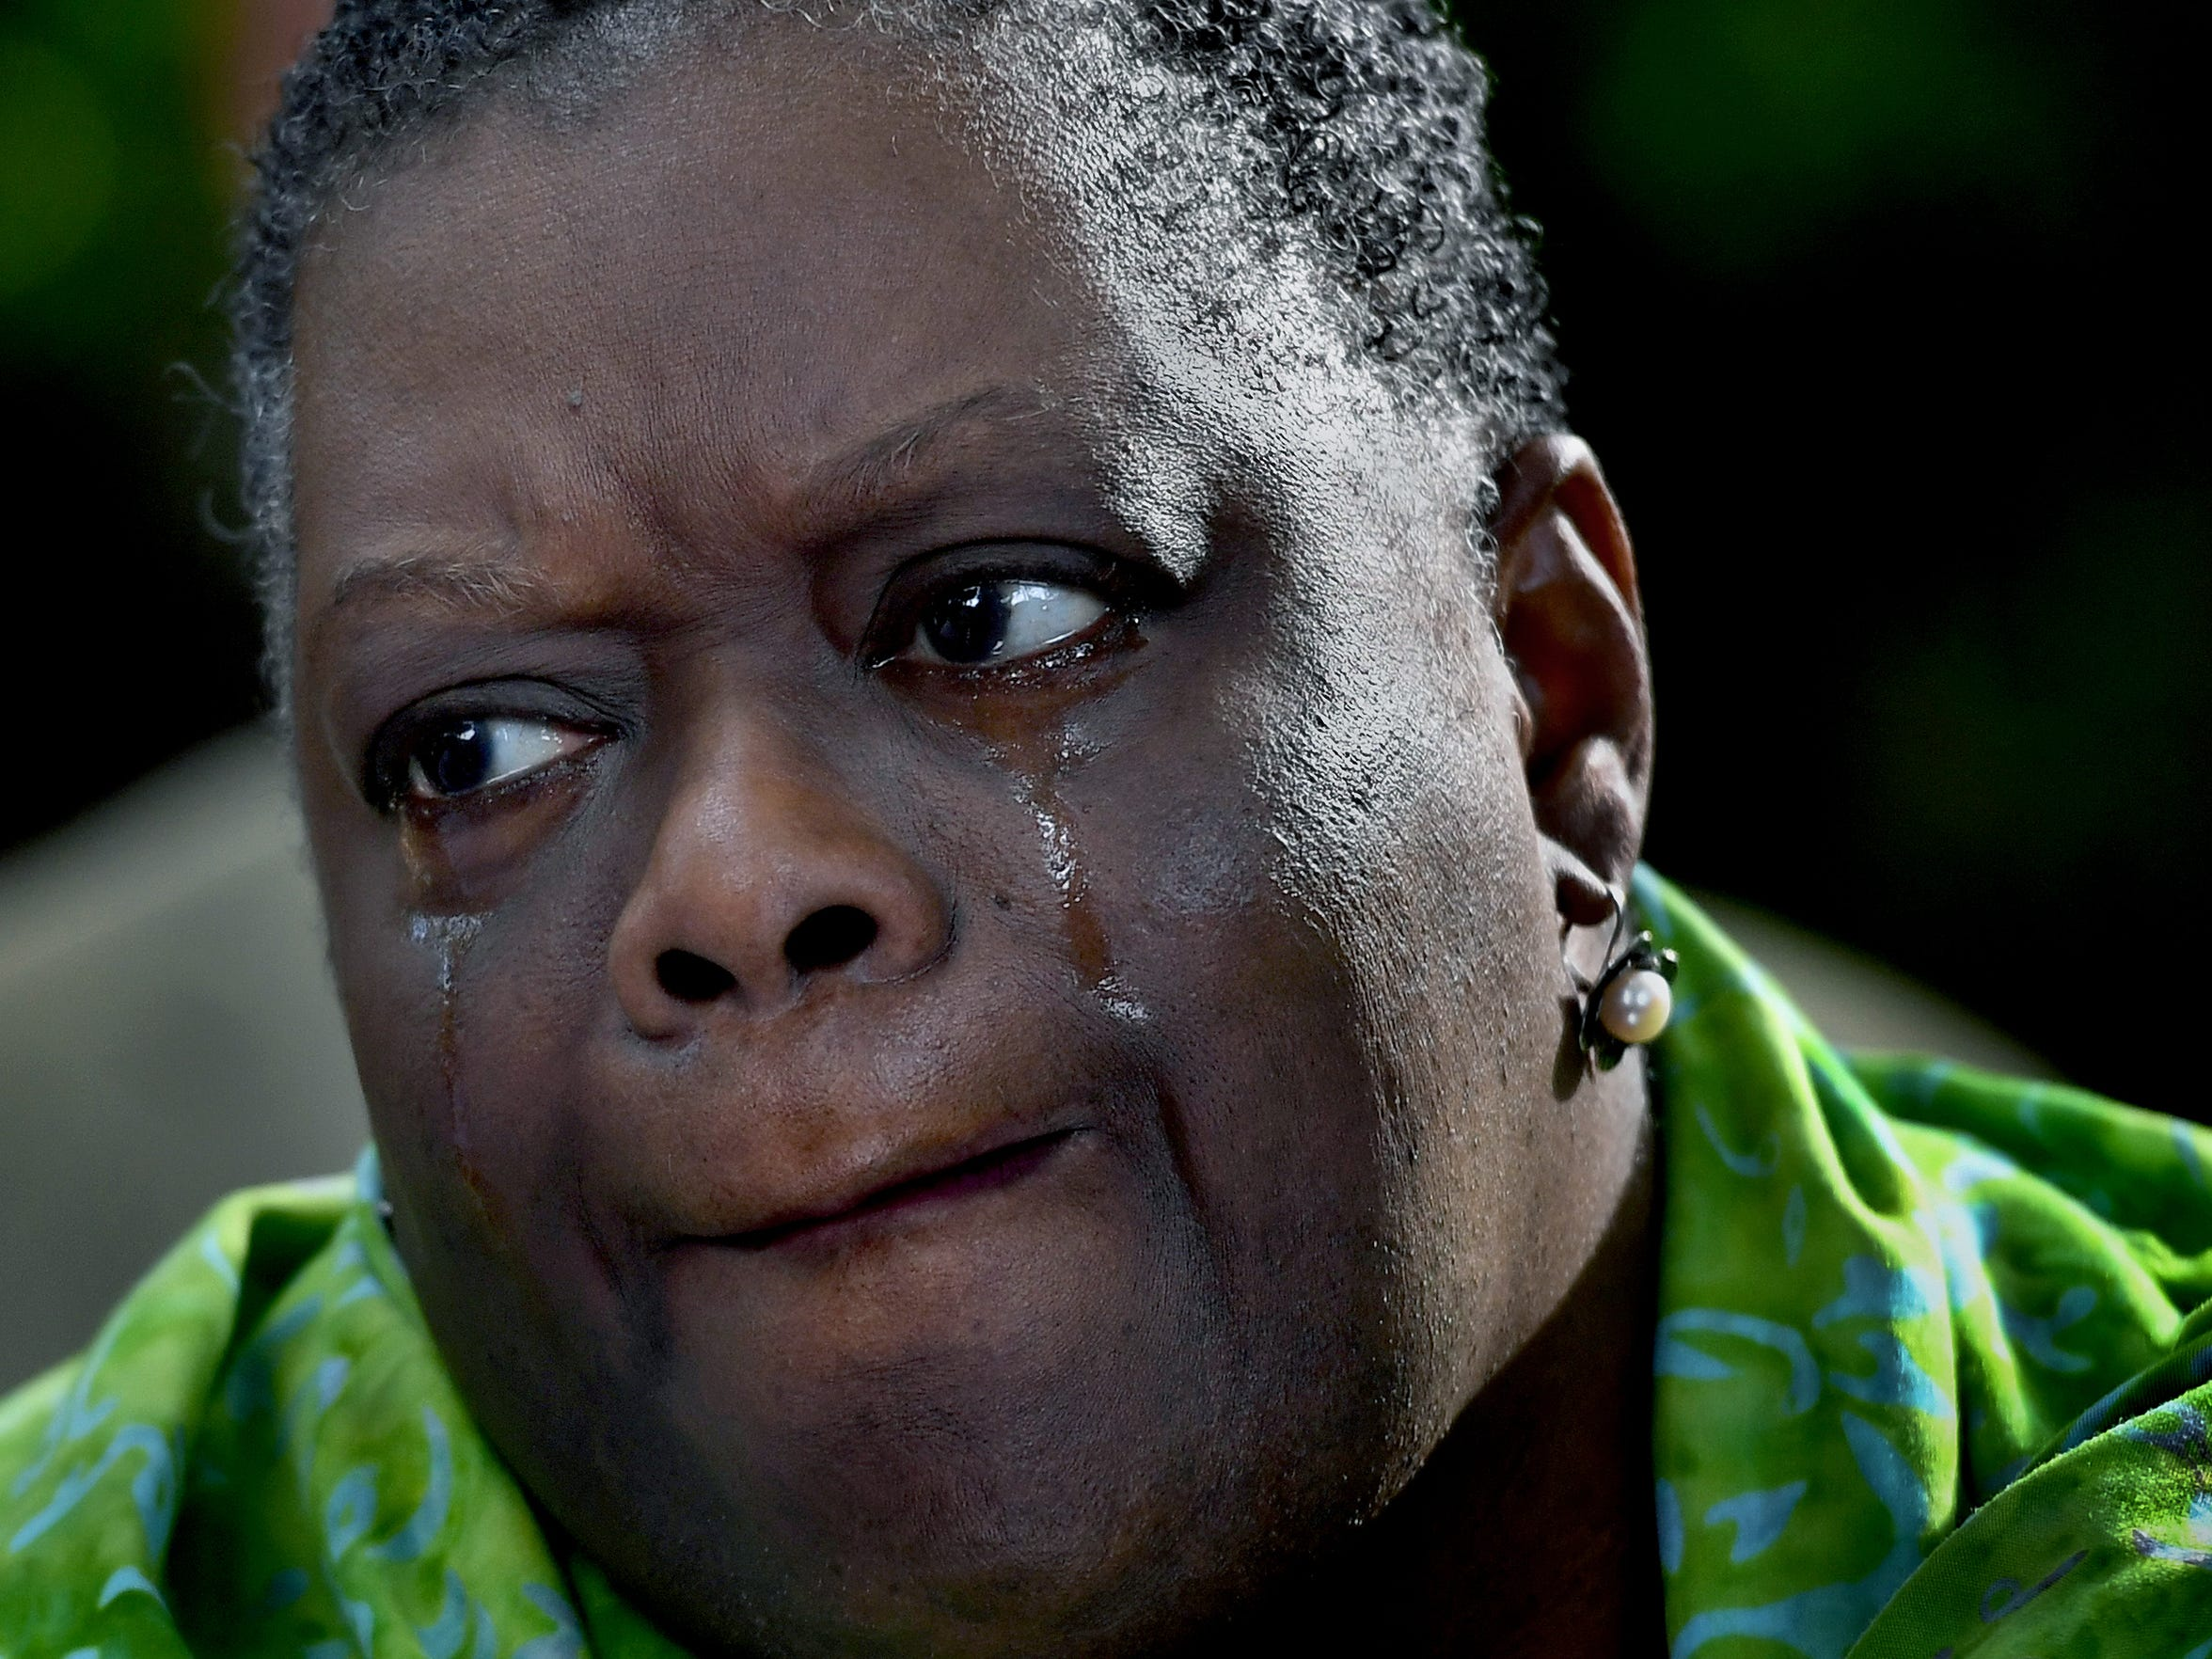 Brenda Brown-Grooms, a local pastor, cries during the